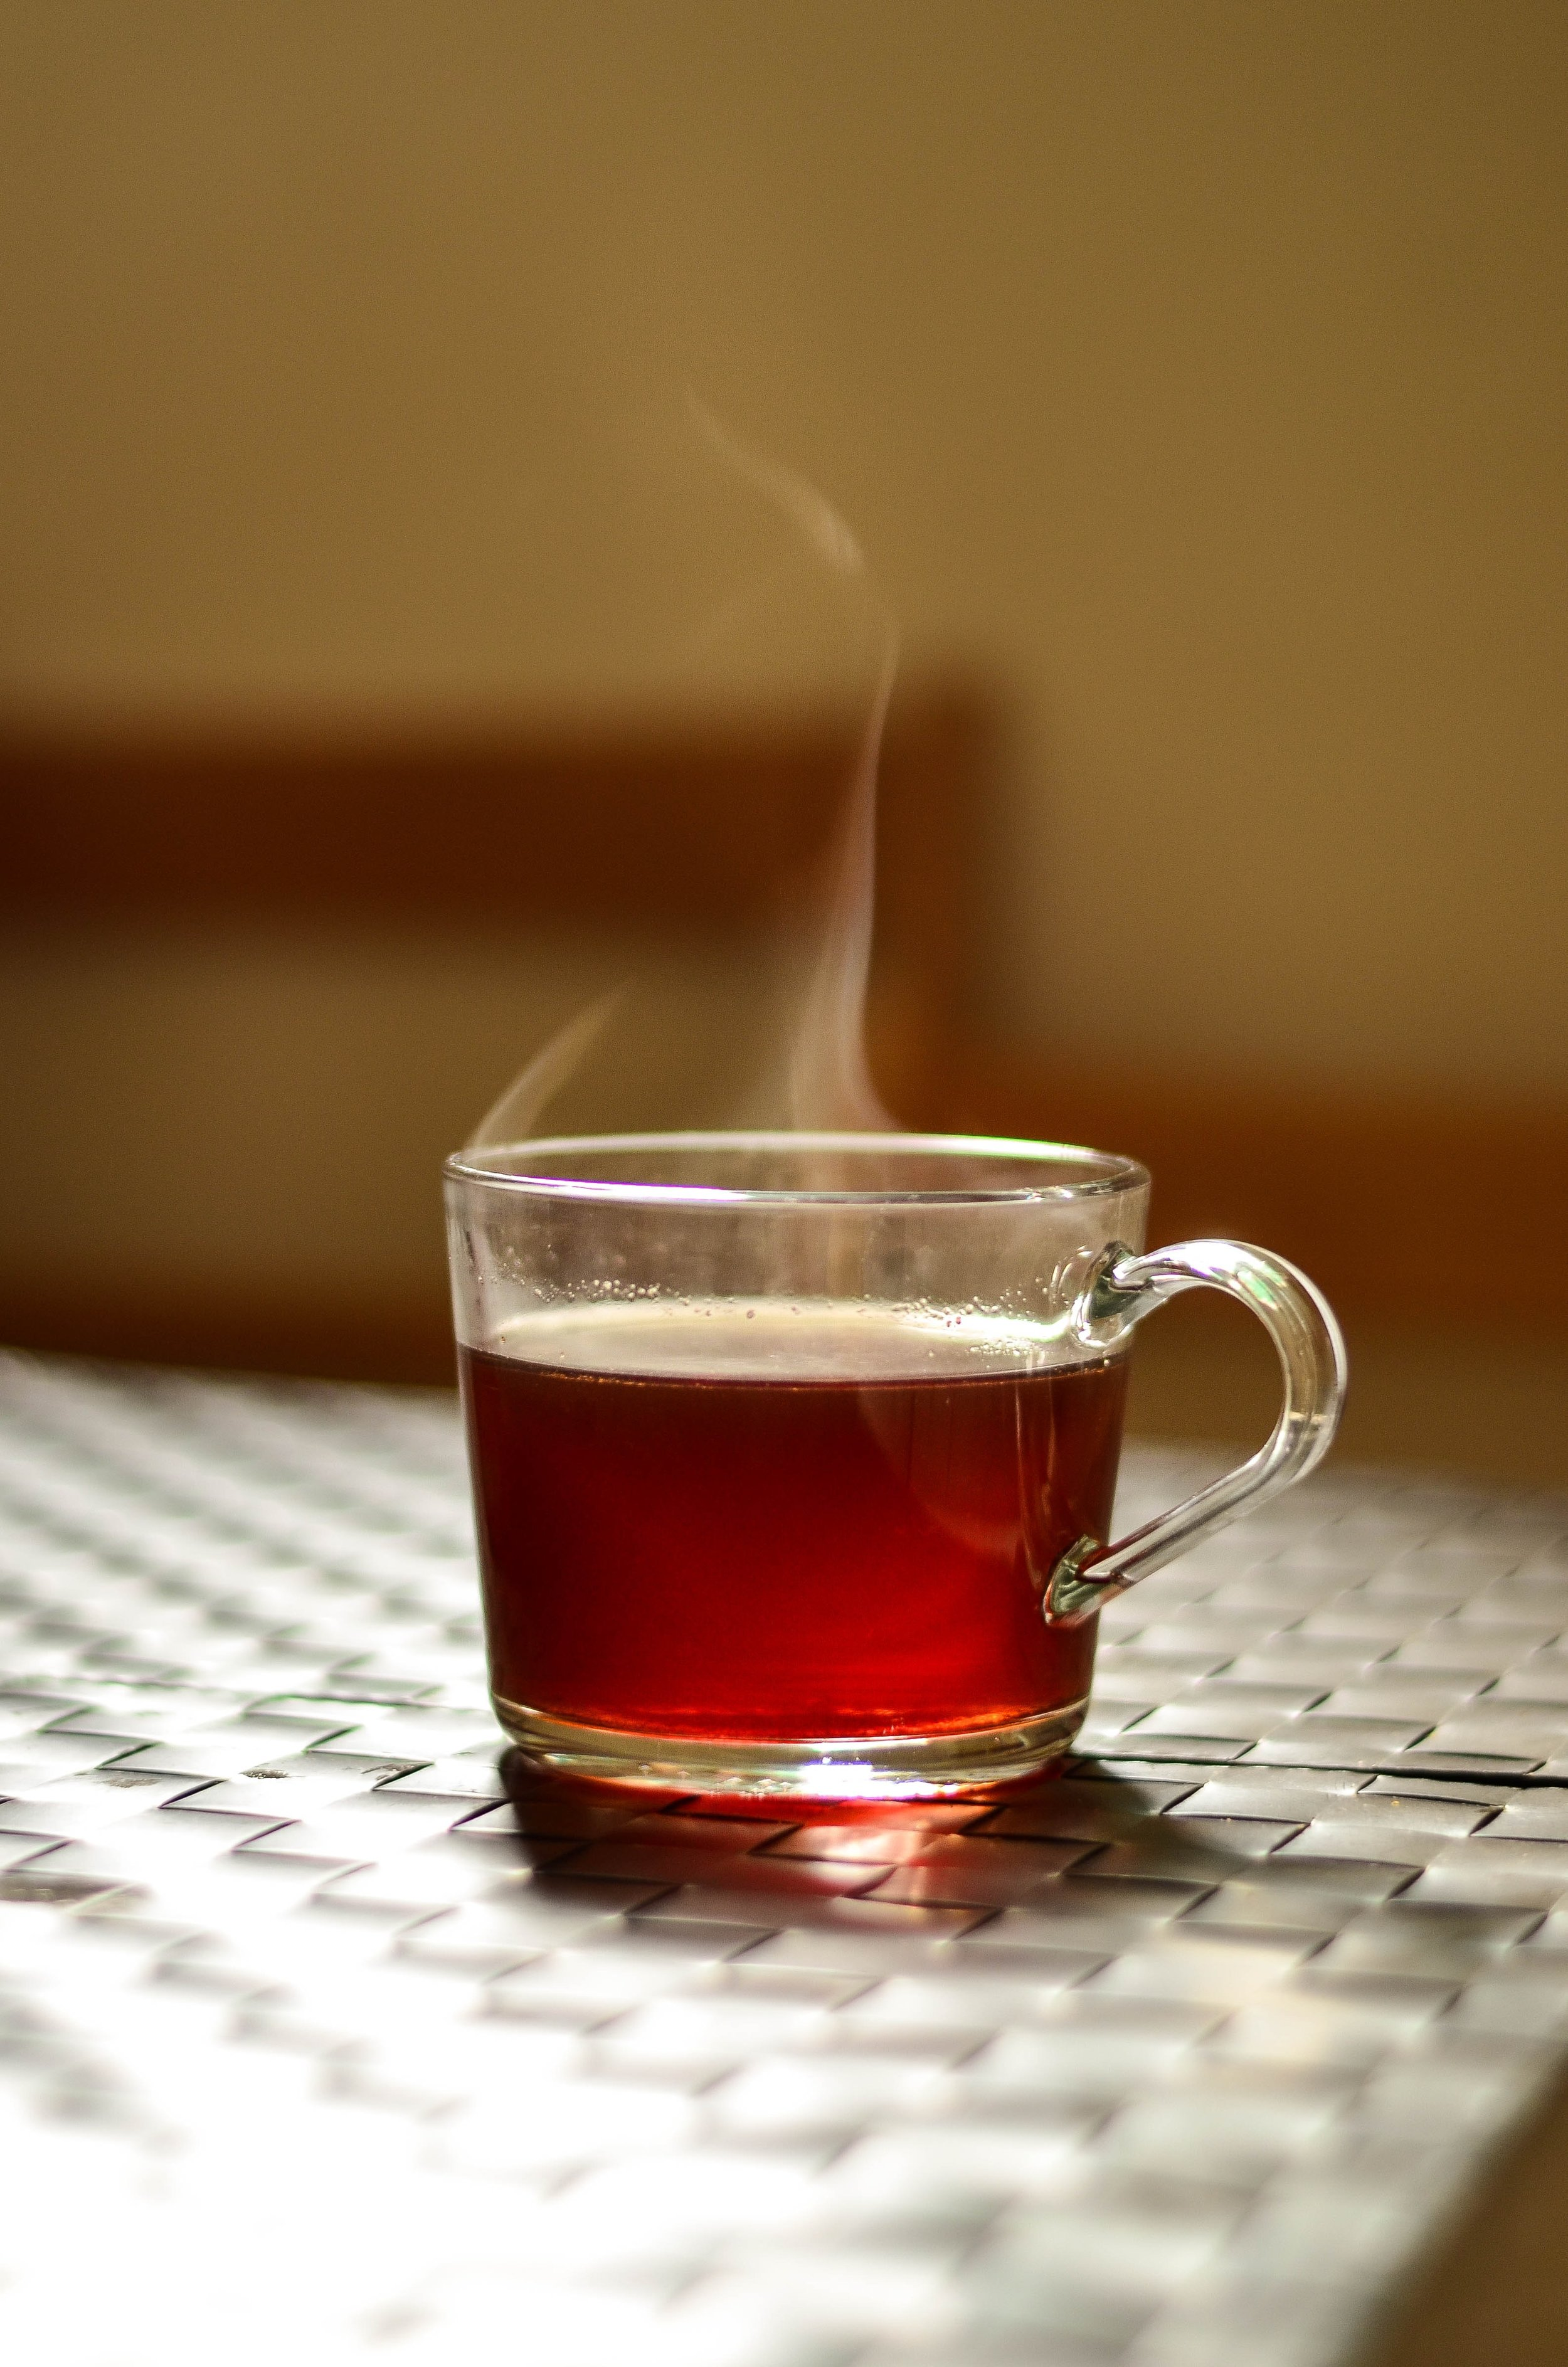 Brewed Mamaki tea is a rich red hue.